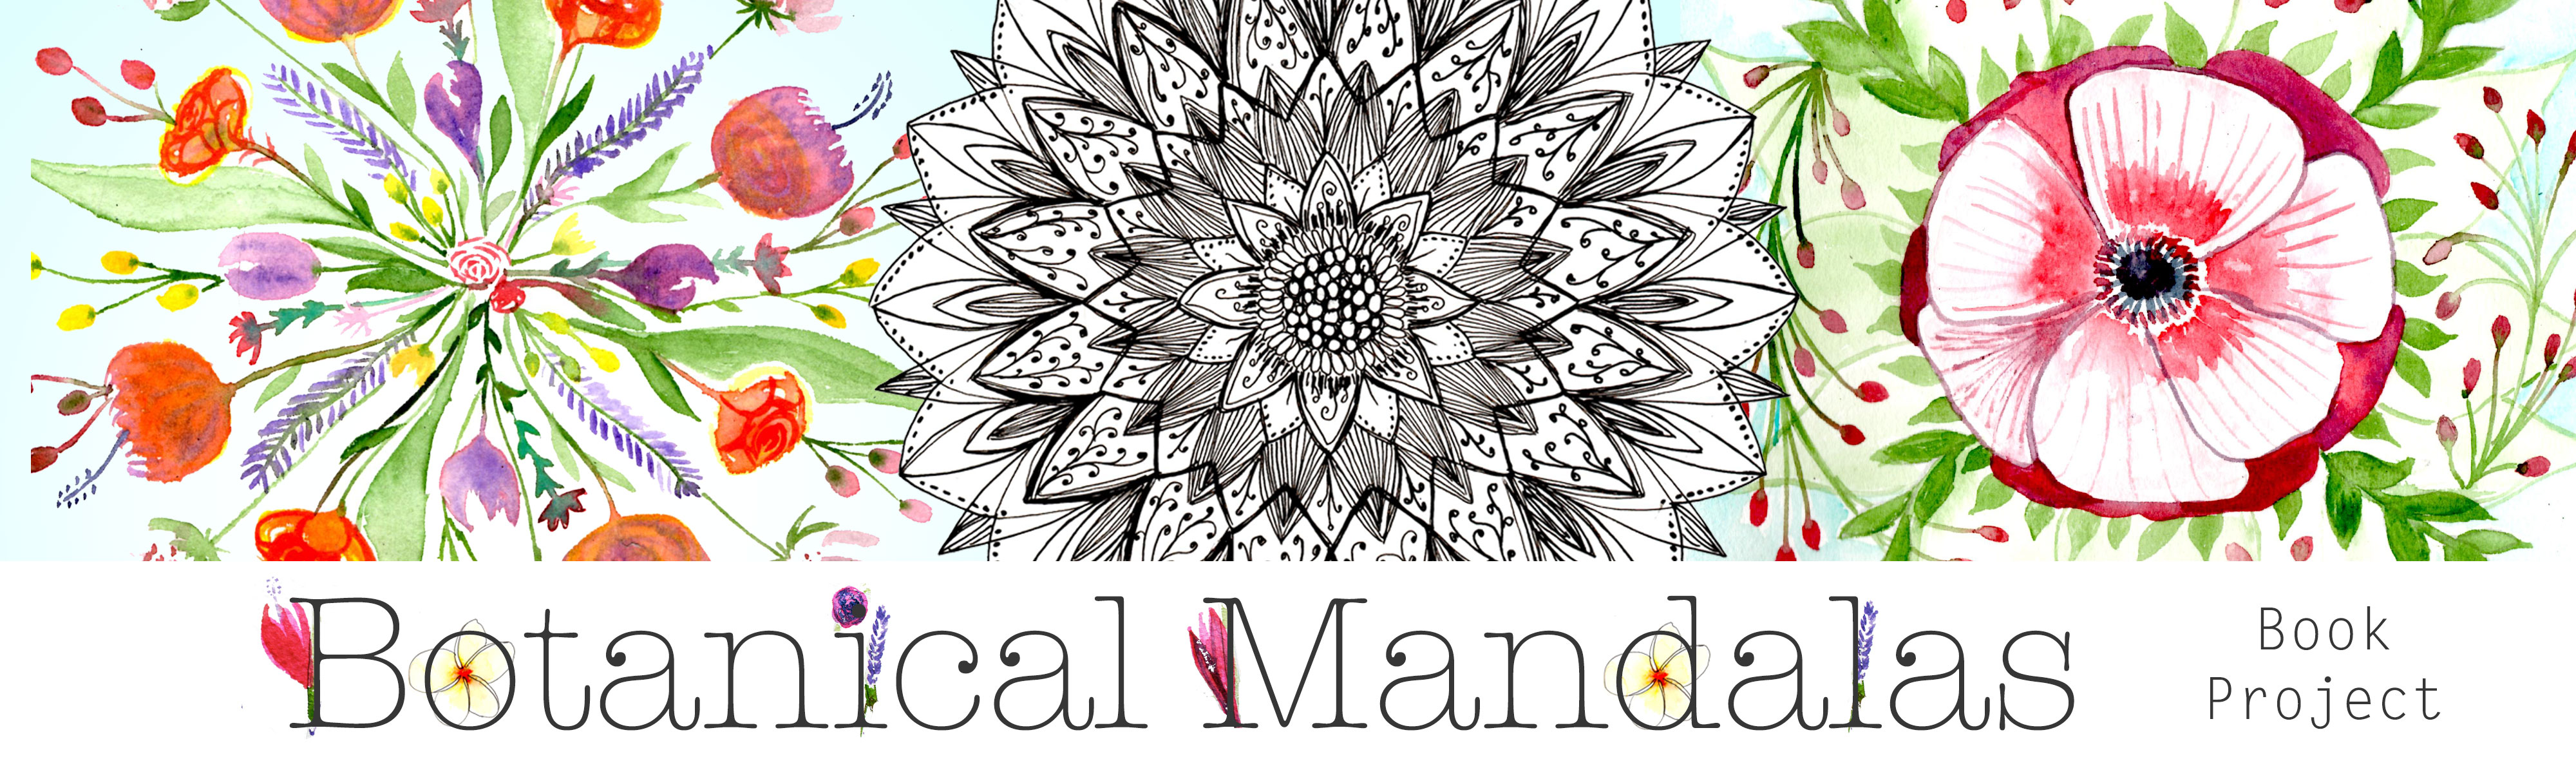 Botanical Mandala Book Project header Louise Gale